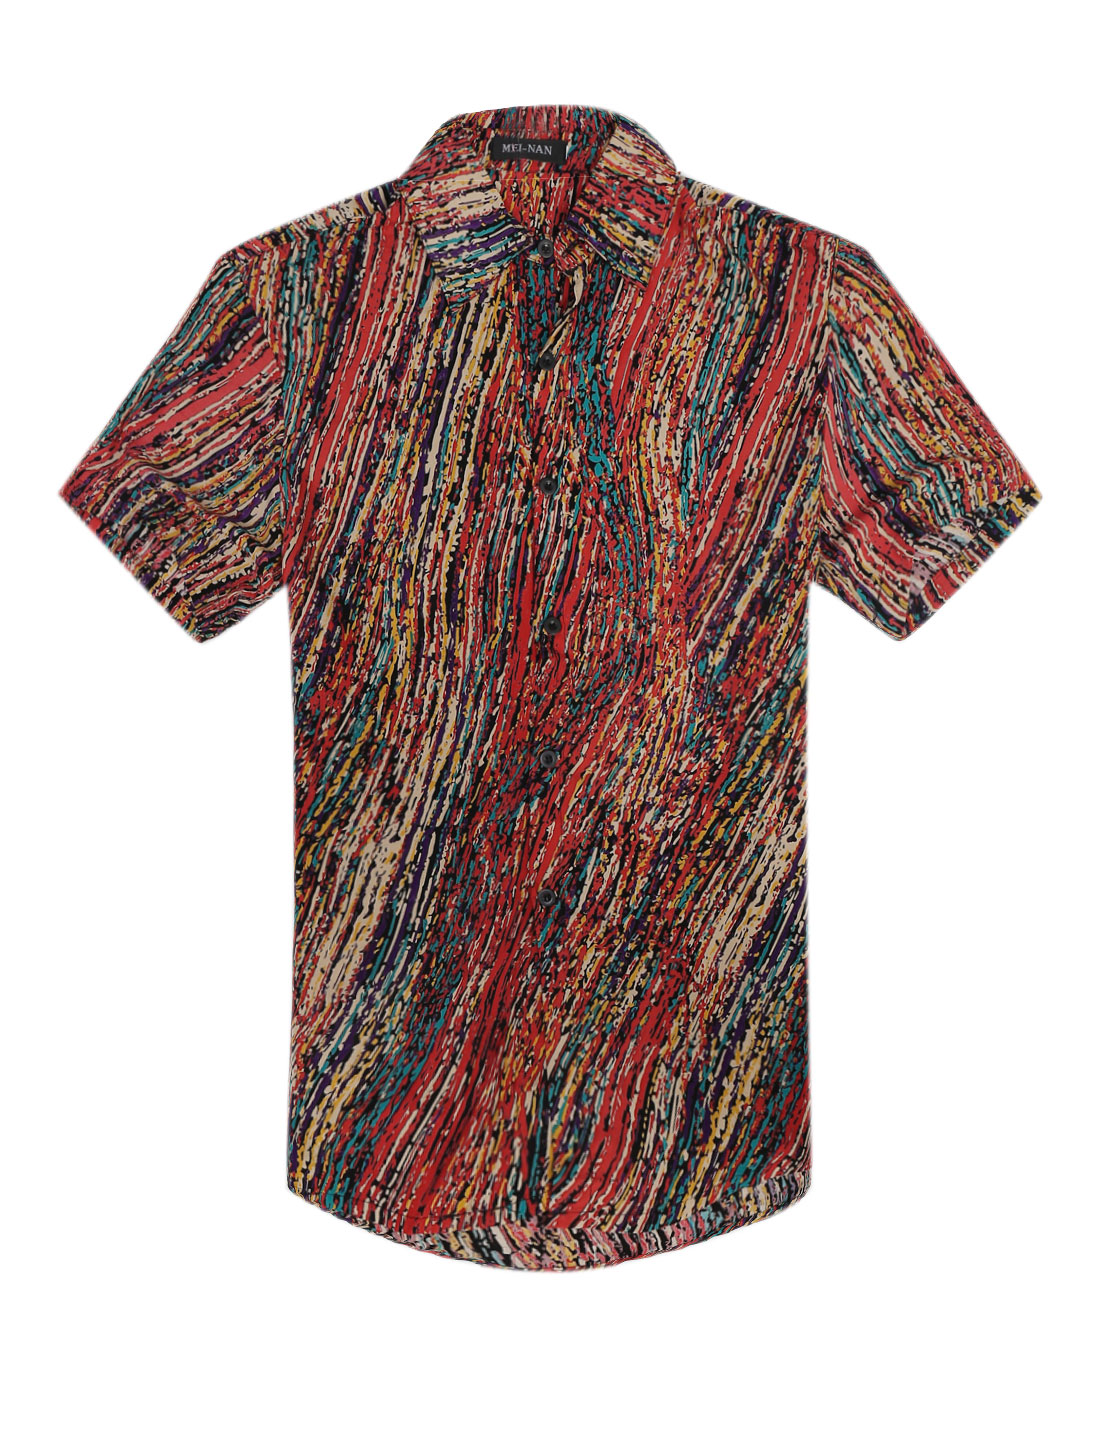 Men NEW Fashion Single Breasted Novelty Prints Round Hem Shirt Multicolor M